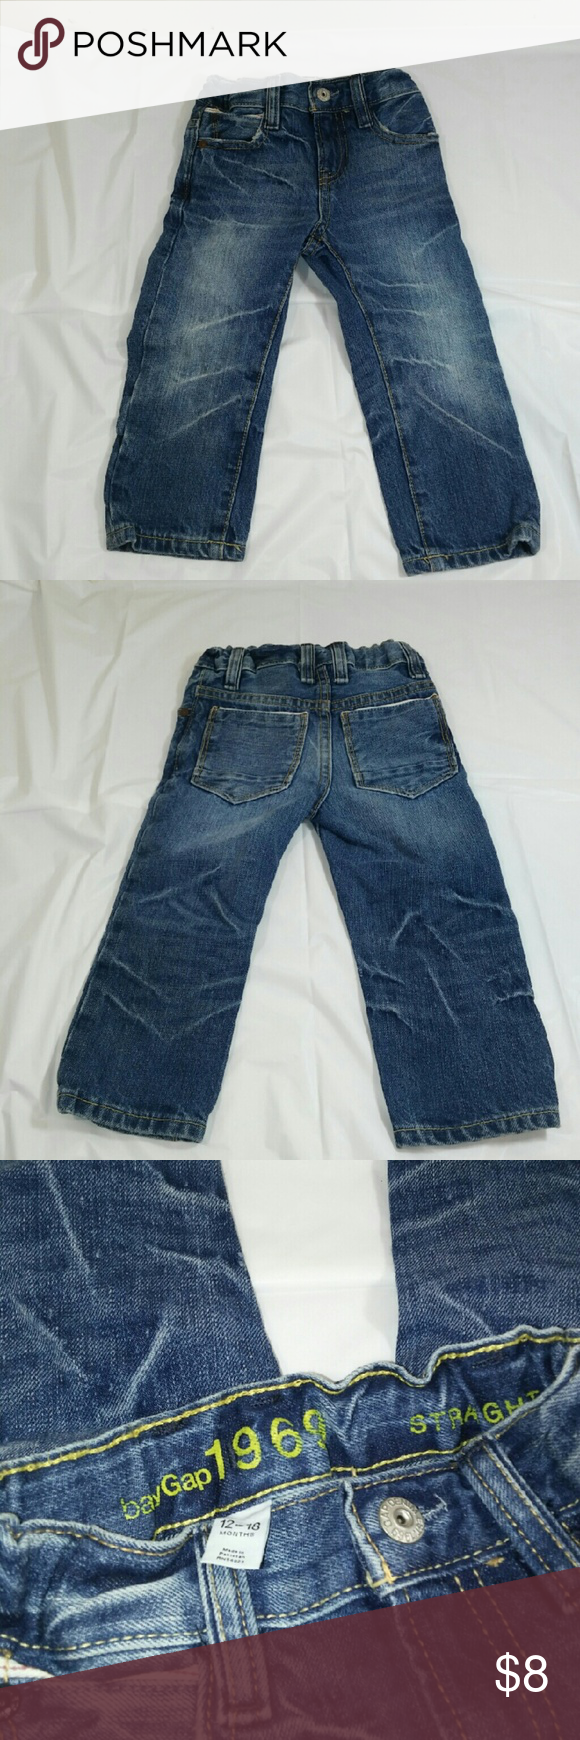 Baby gap boy light denim jeans Baby gap straight  jeans Light blue Size:12/18months Condition:used light wear smoke free home baby gap Bottoms Jeans